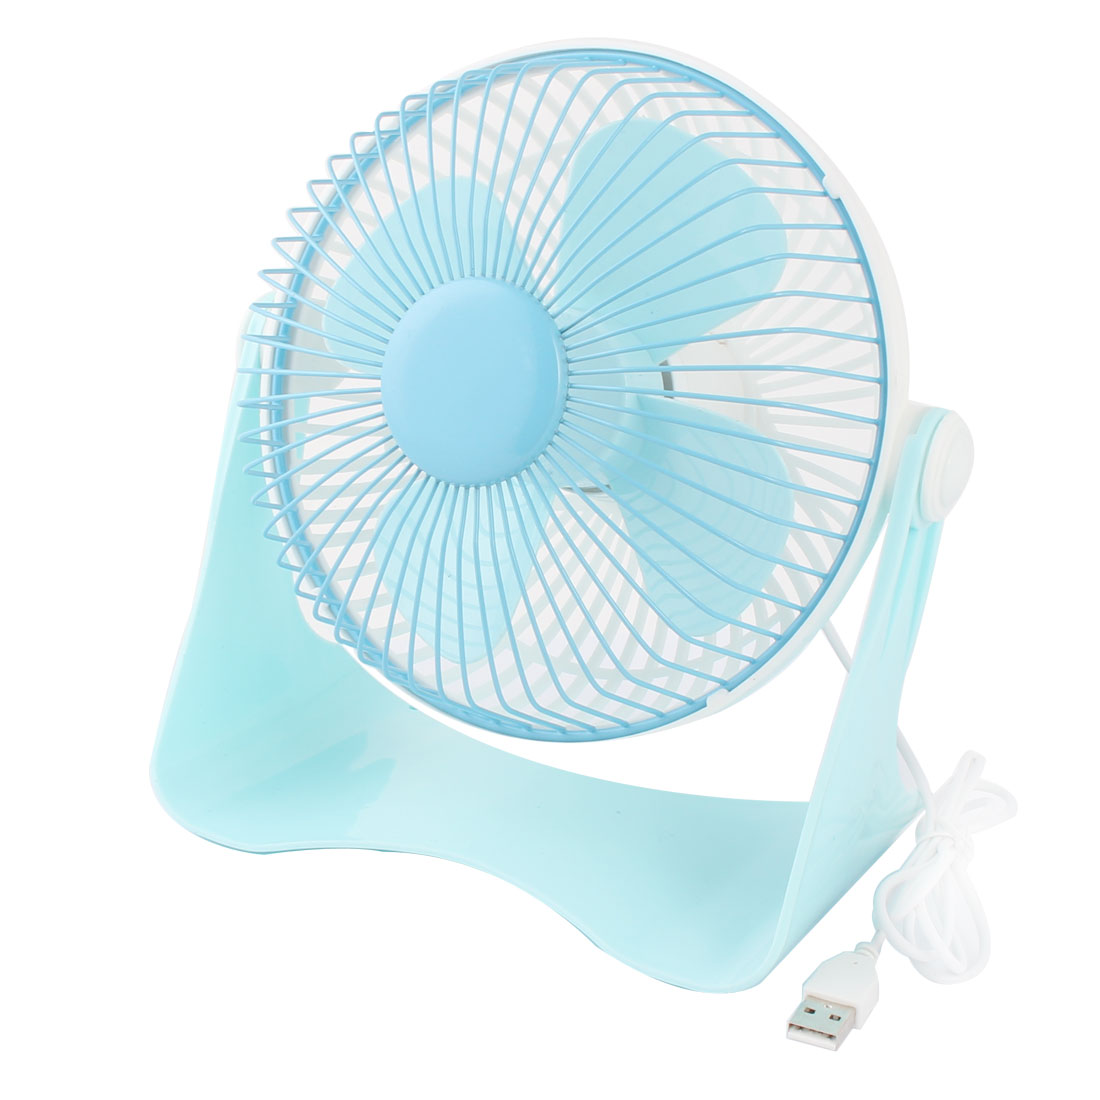 Computer Notebook Laptop U Shaped Portable USB Mini Cooler Cooling Fan Blue White